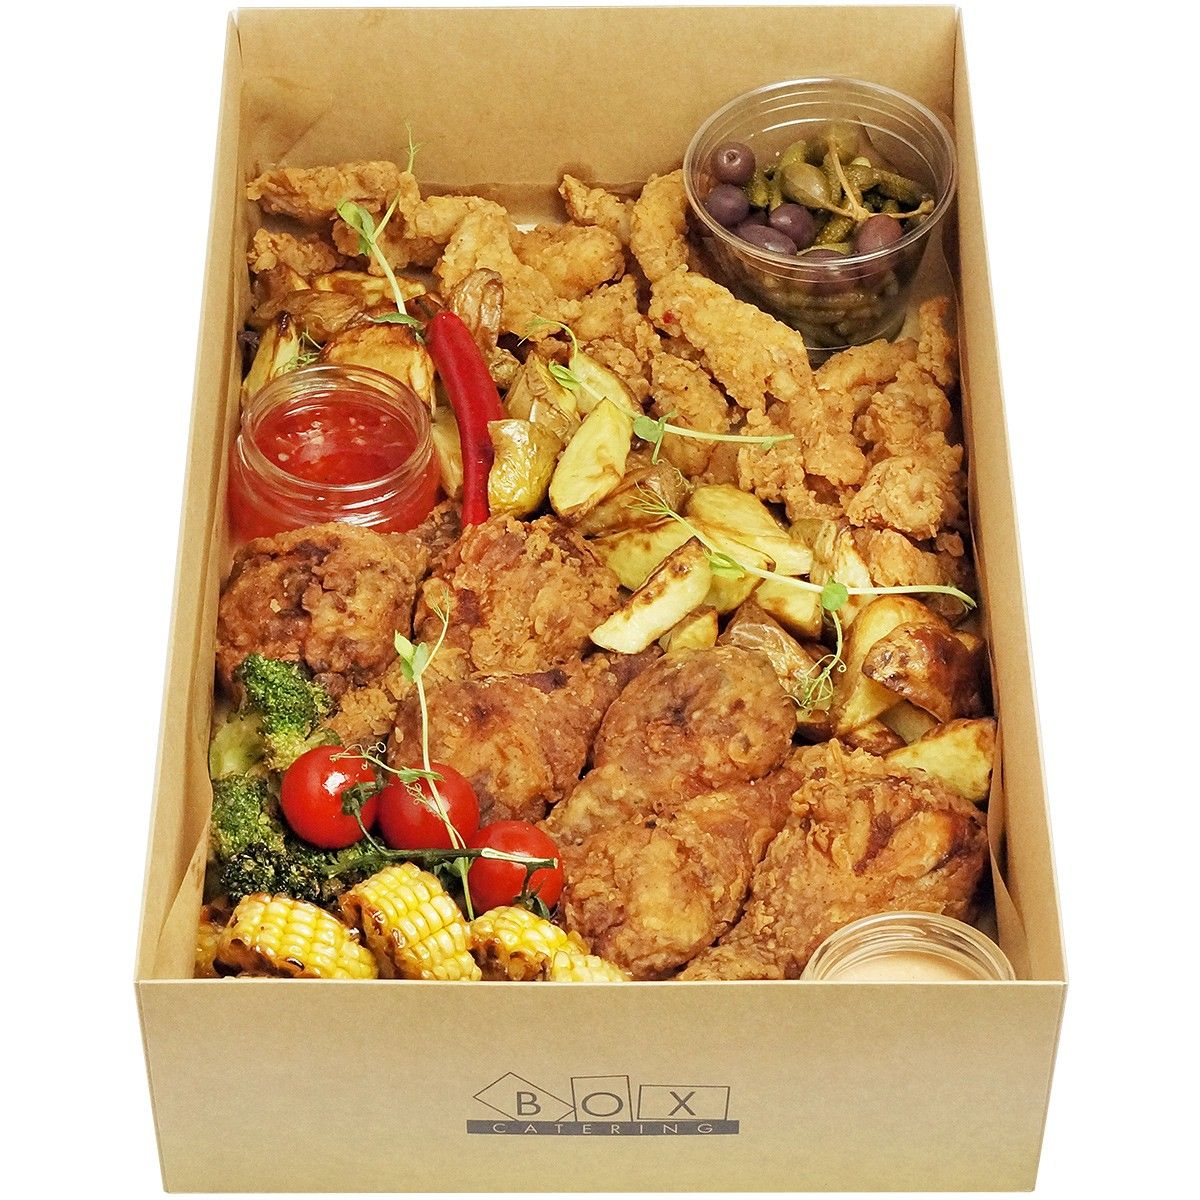 Fried chicken big box: 999 грн. фото 6